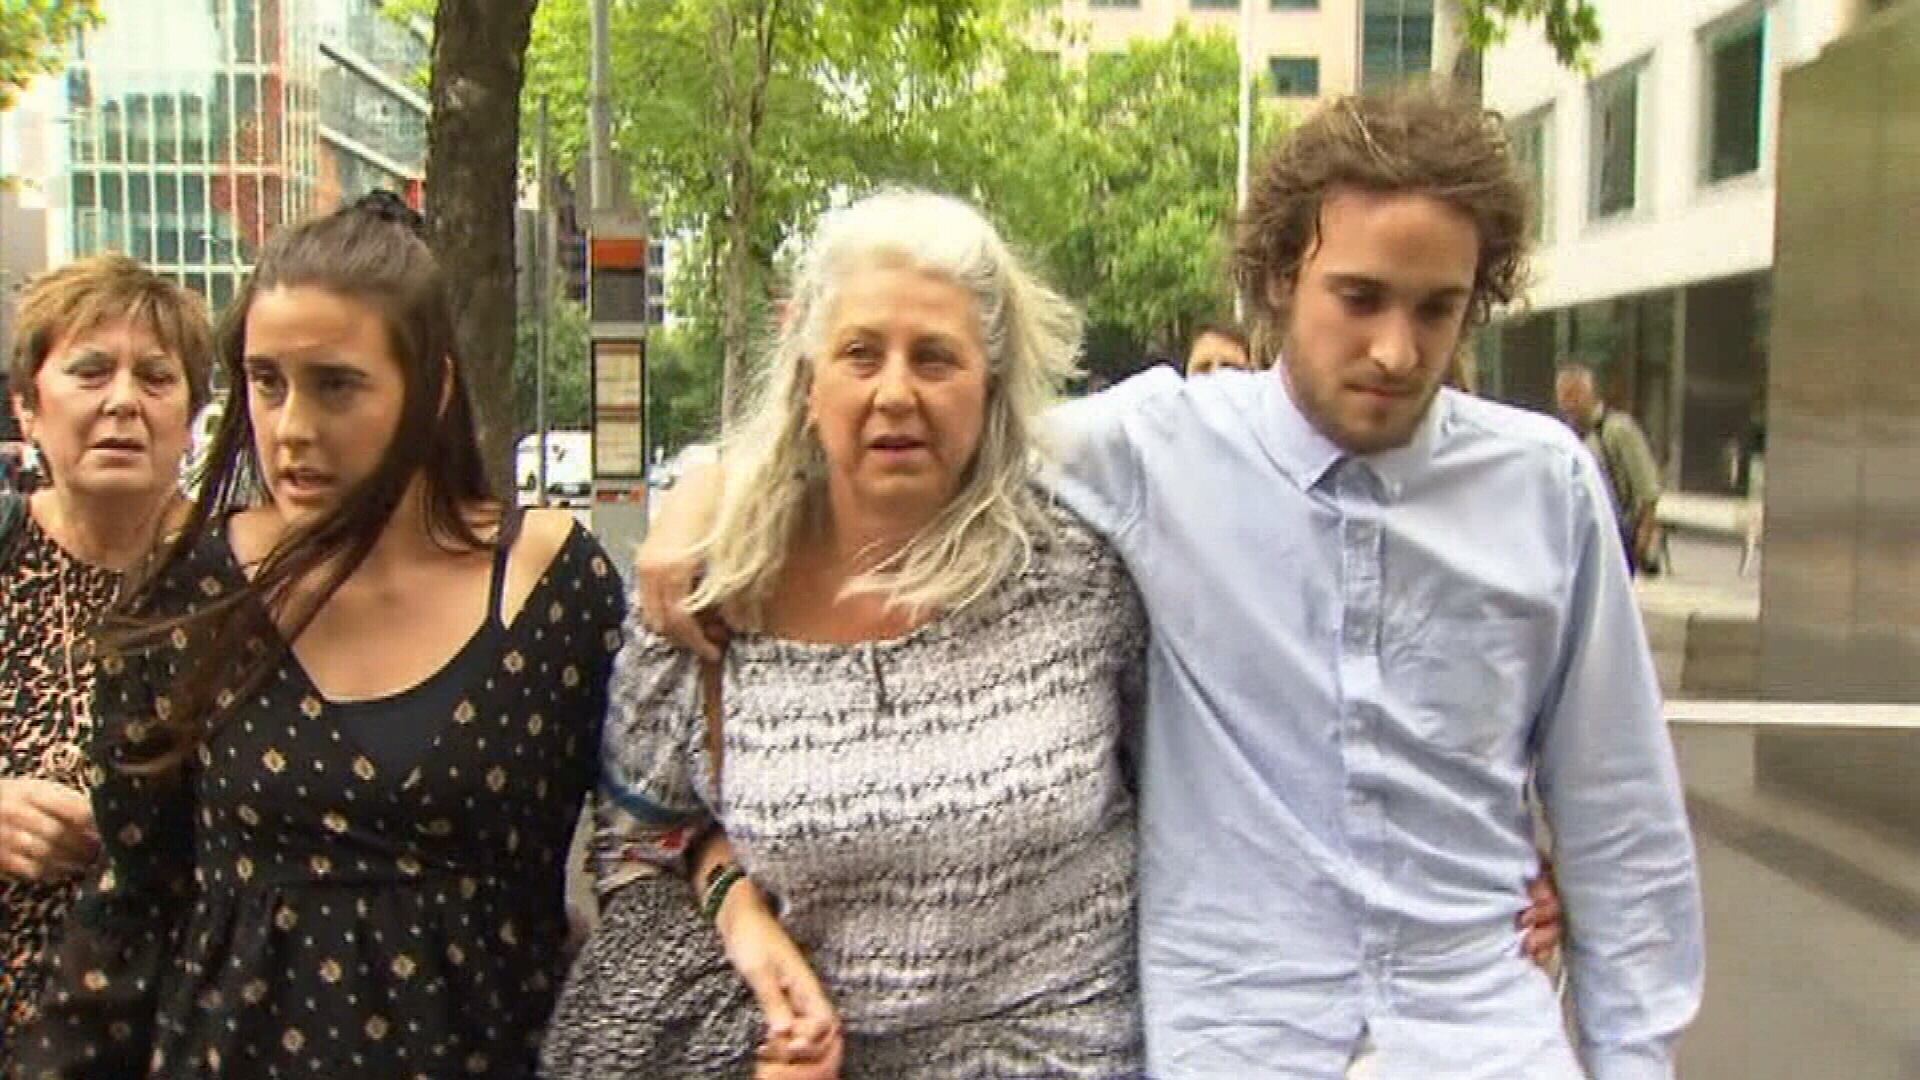 Jailed bus driver's family speaks out